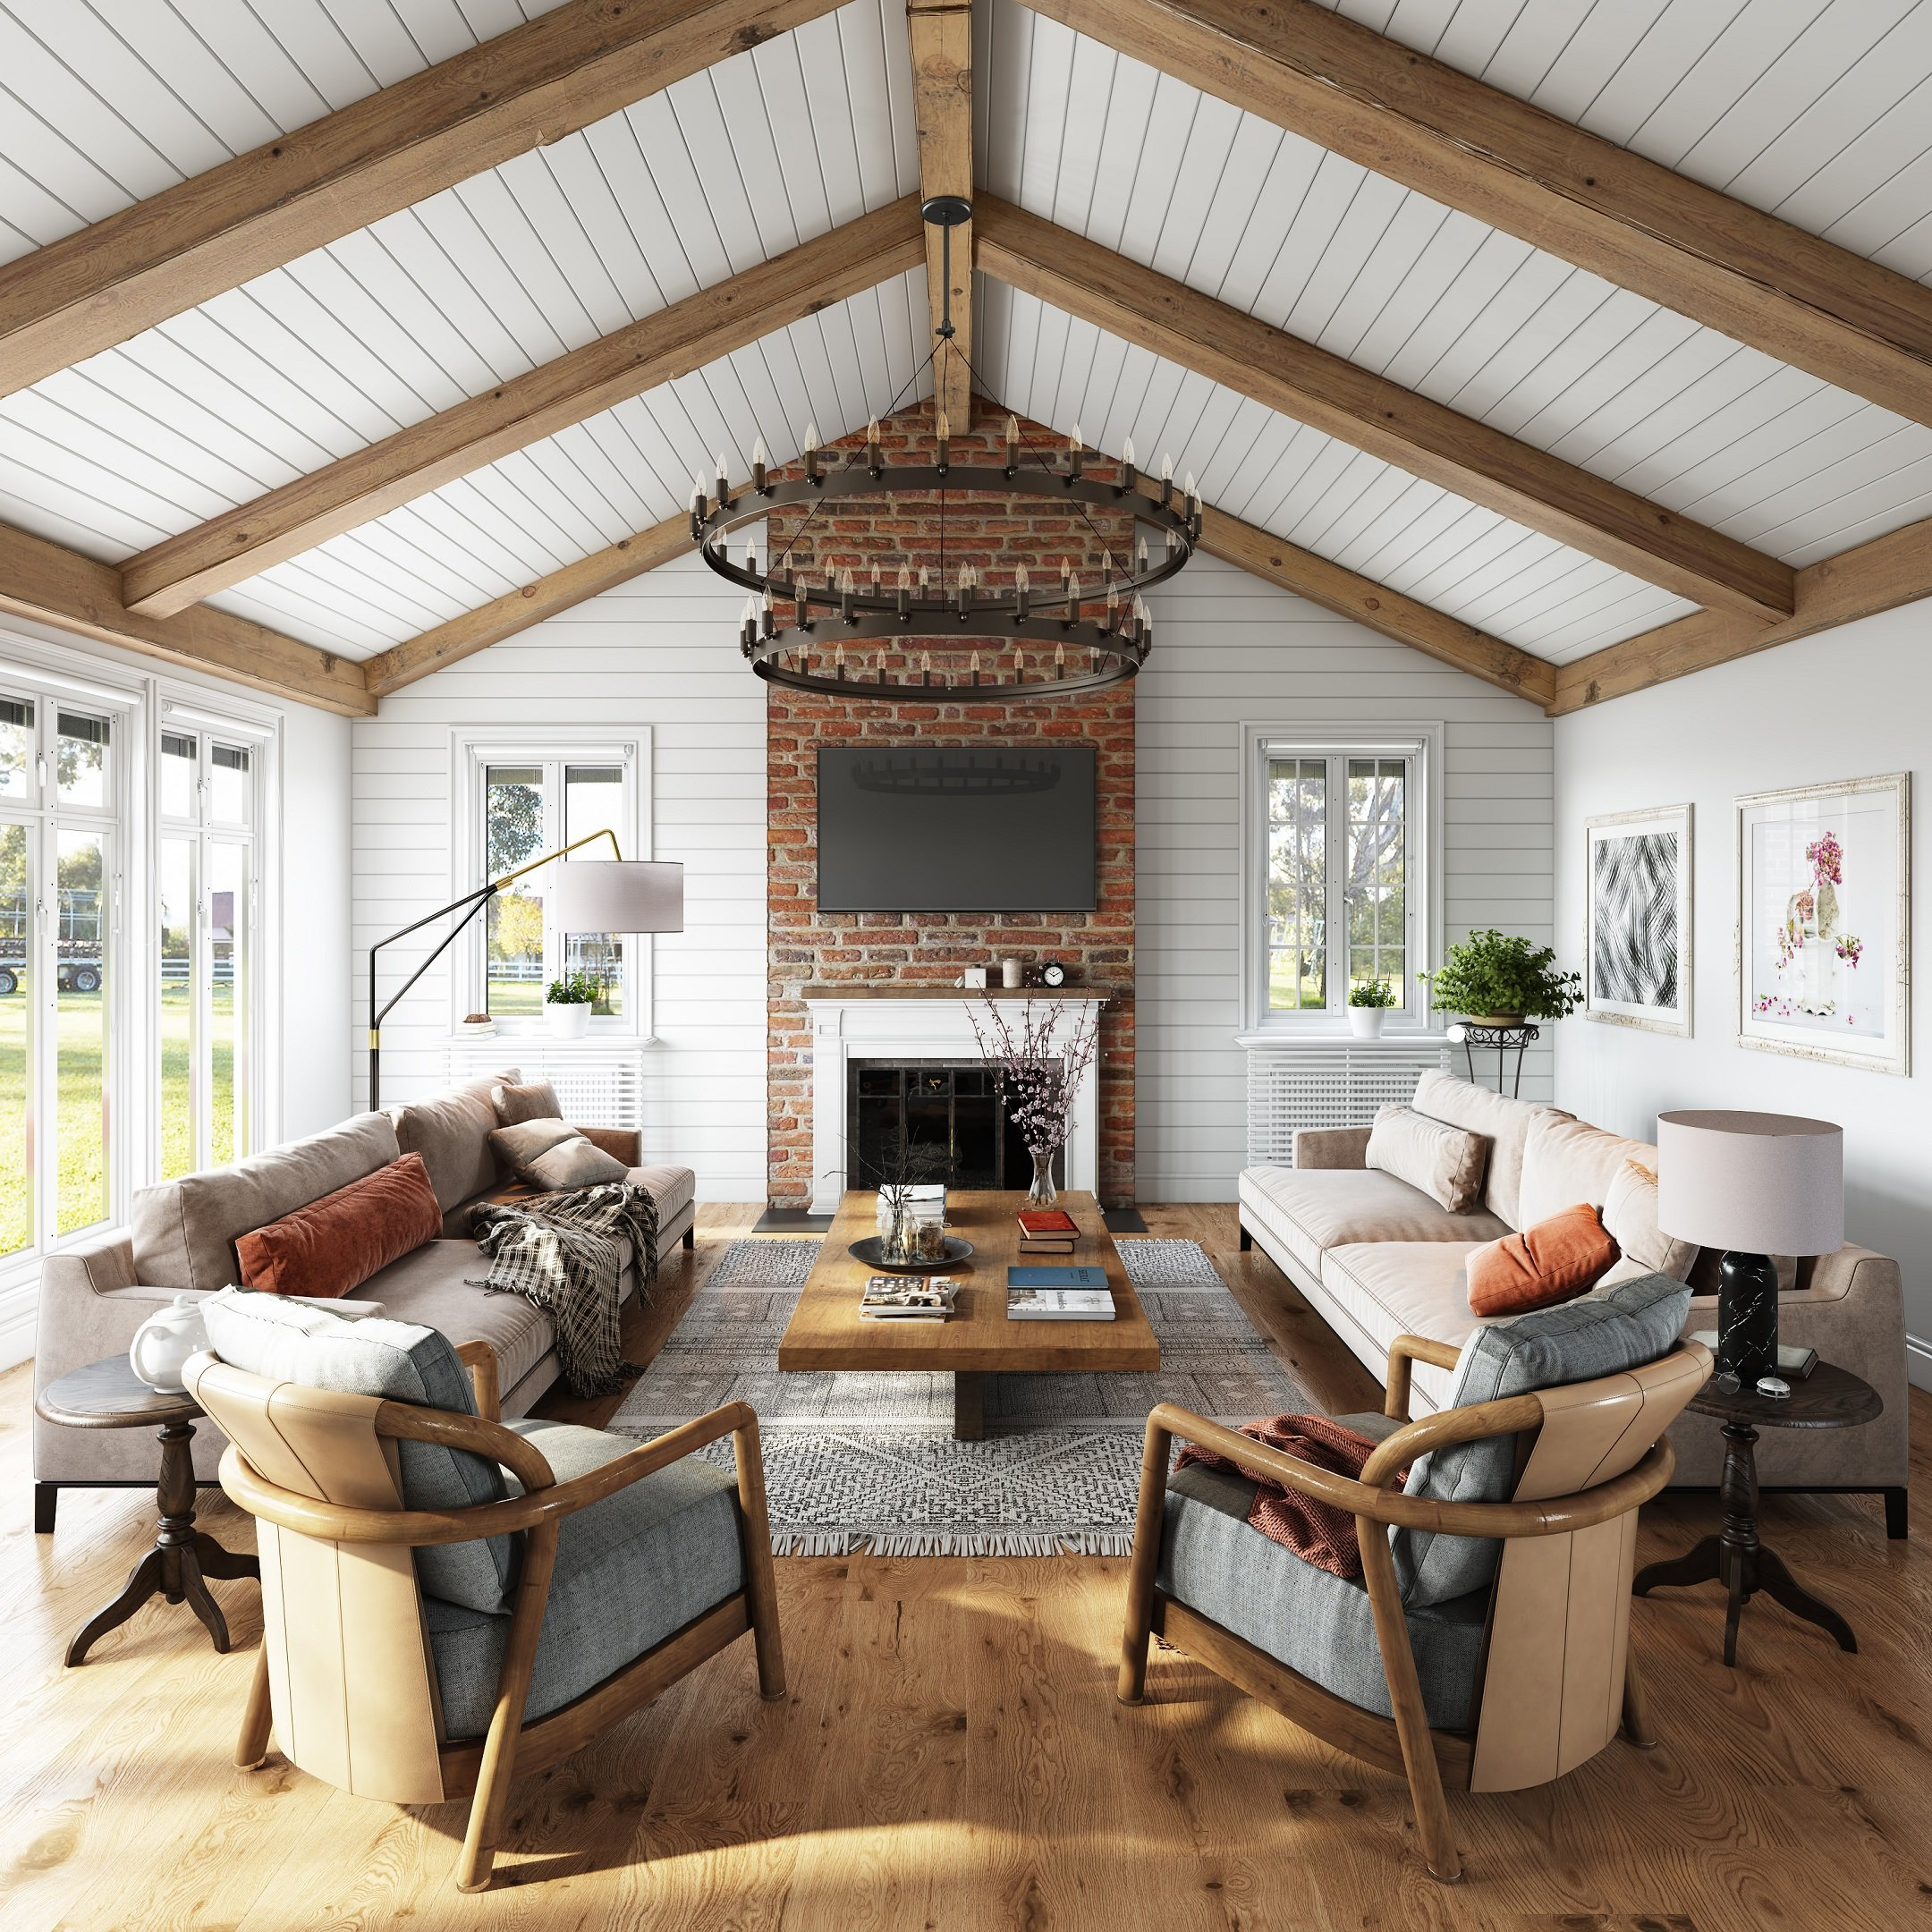 3D Visualization of a Modern Country-Style Living Room